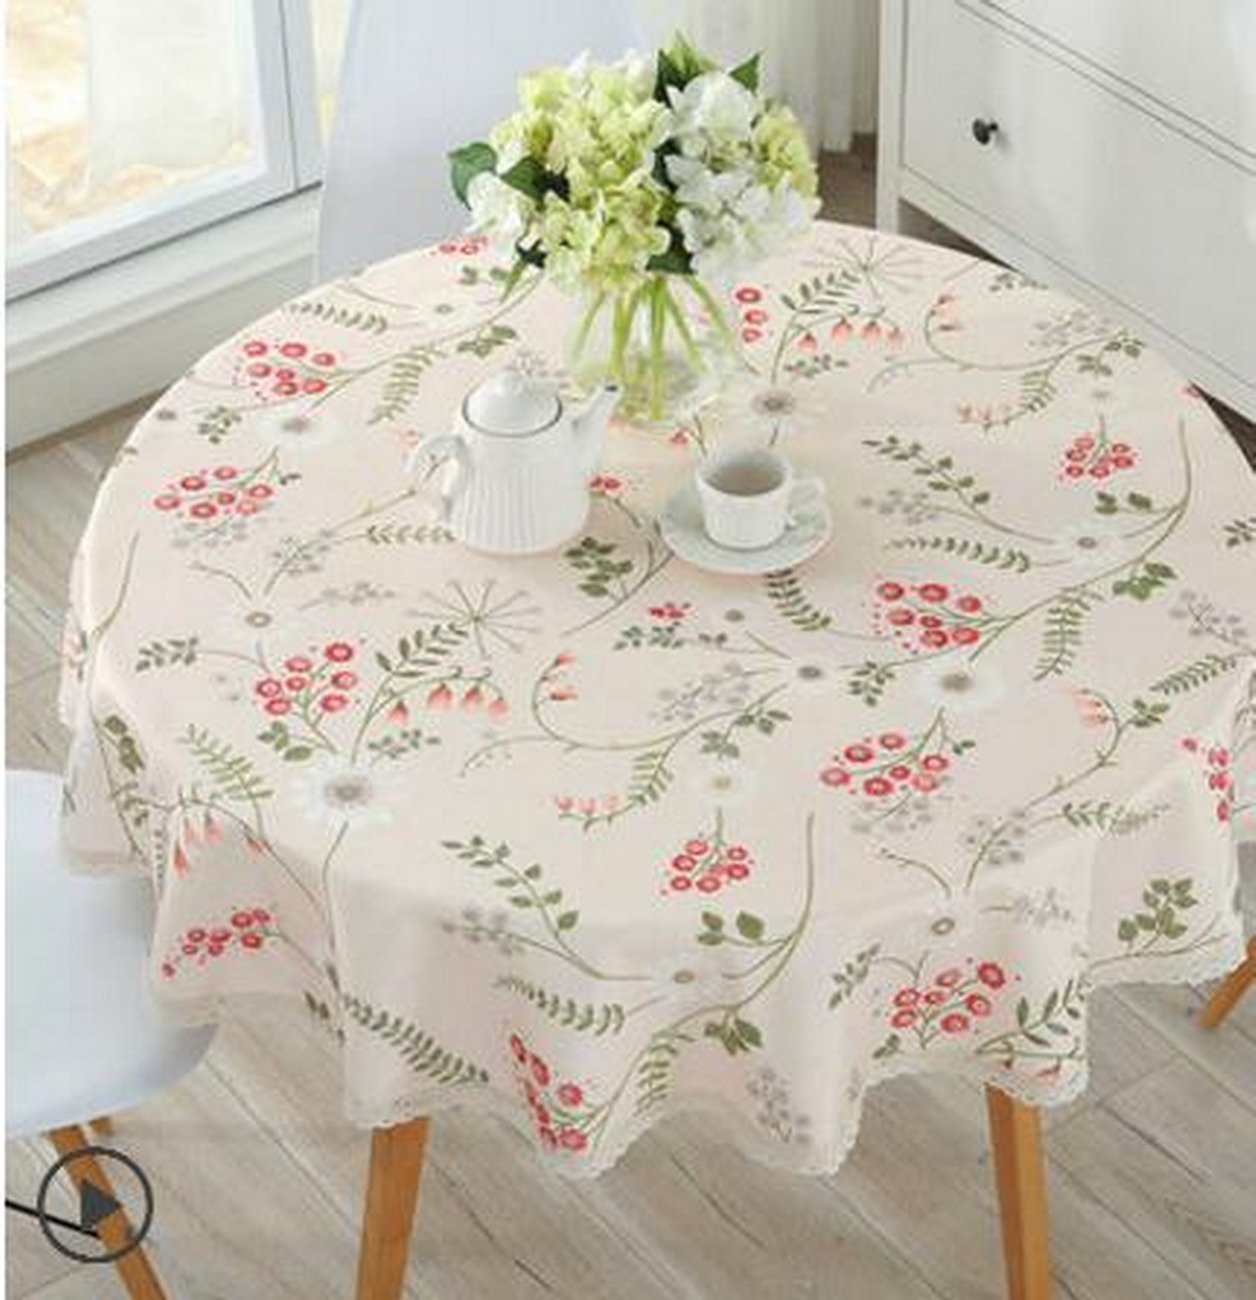 Small Round Table Cloths.Amazon Com Geranjie Round Tablecloths Waterproof Anti Hot Anti Oil